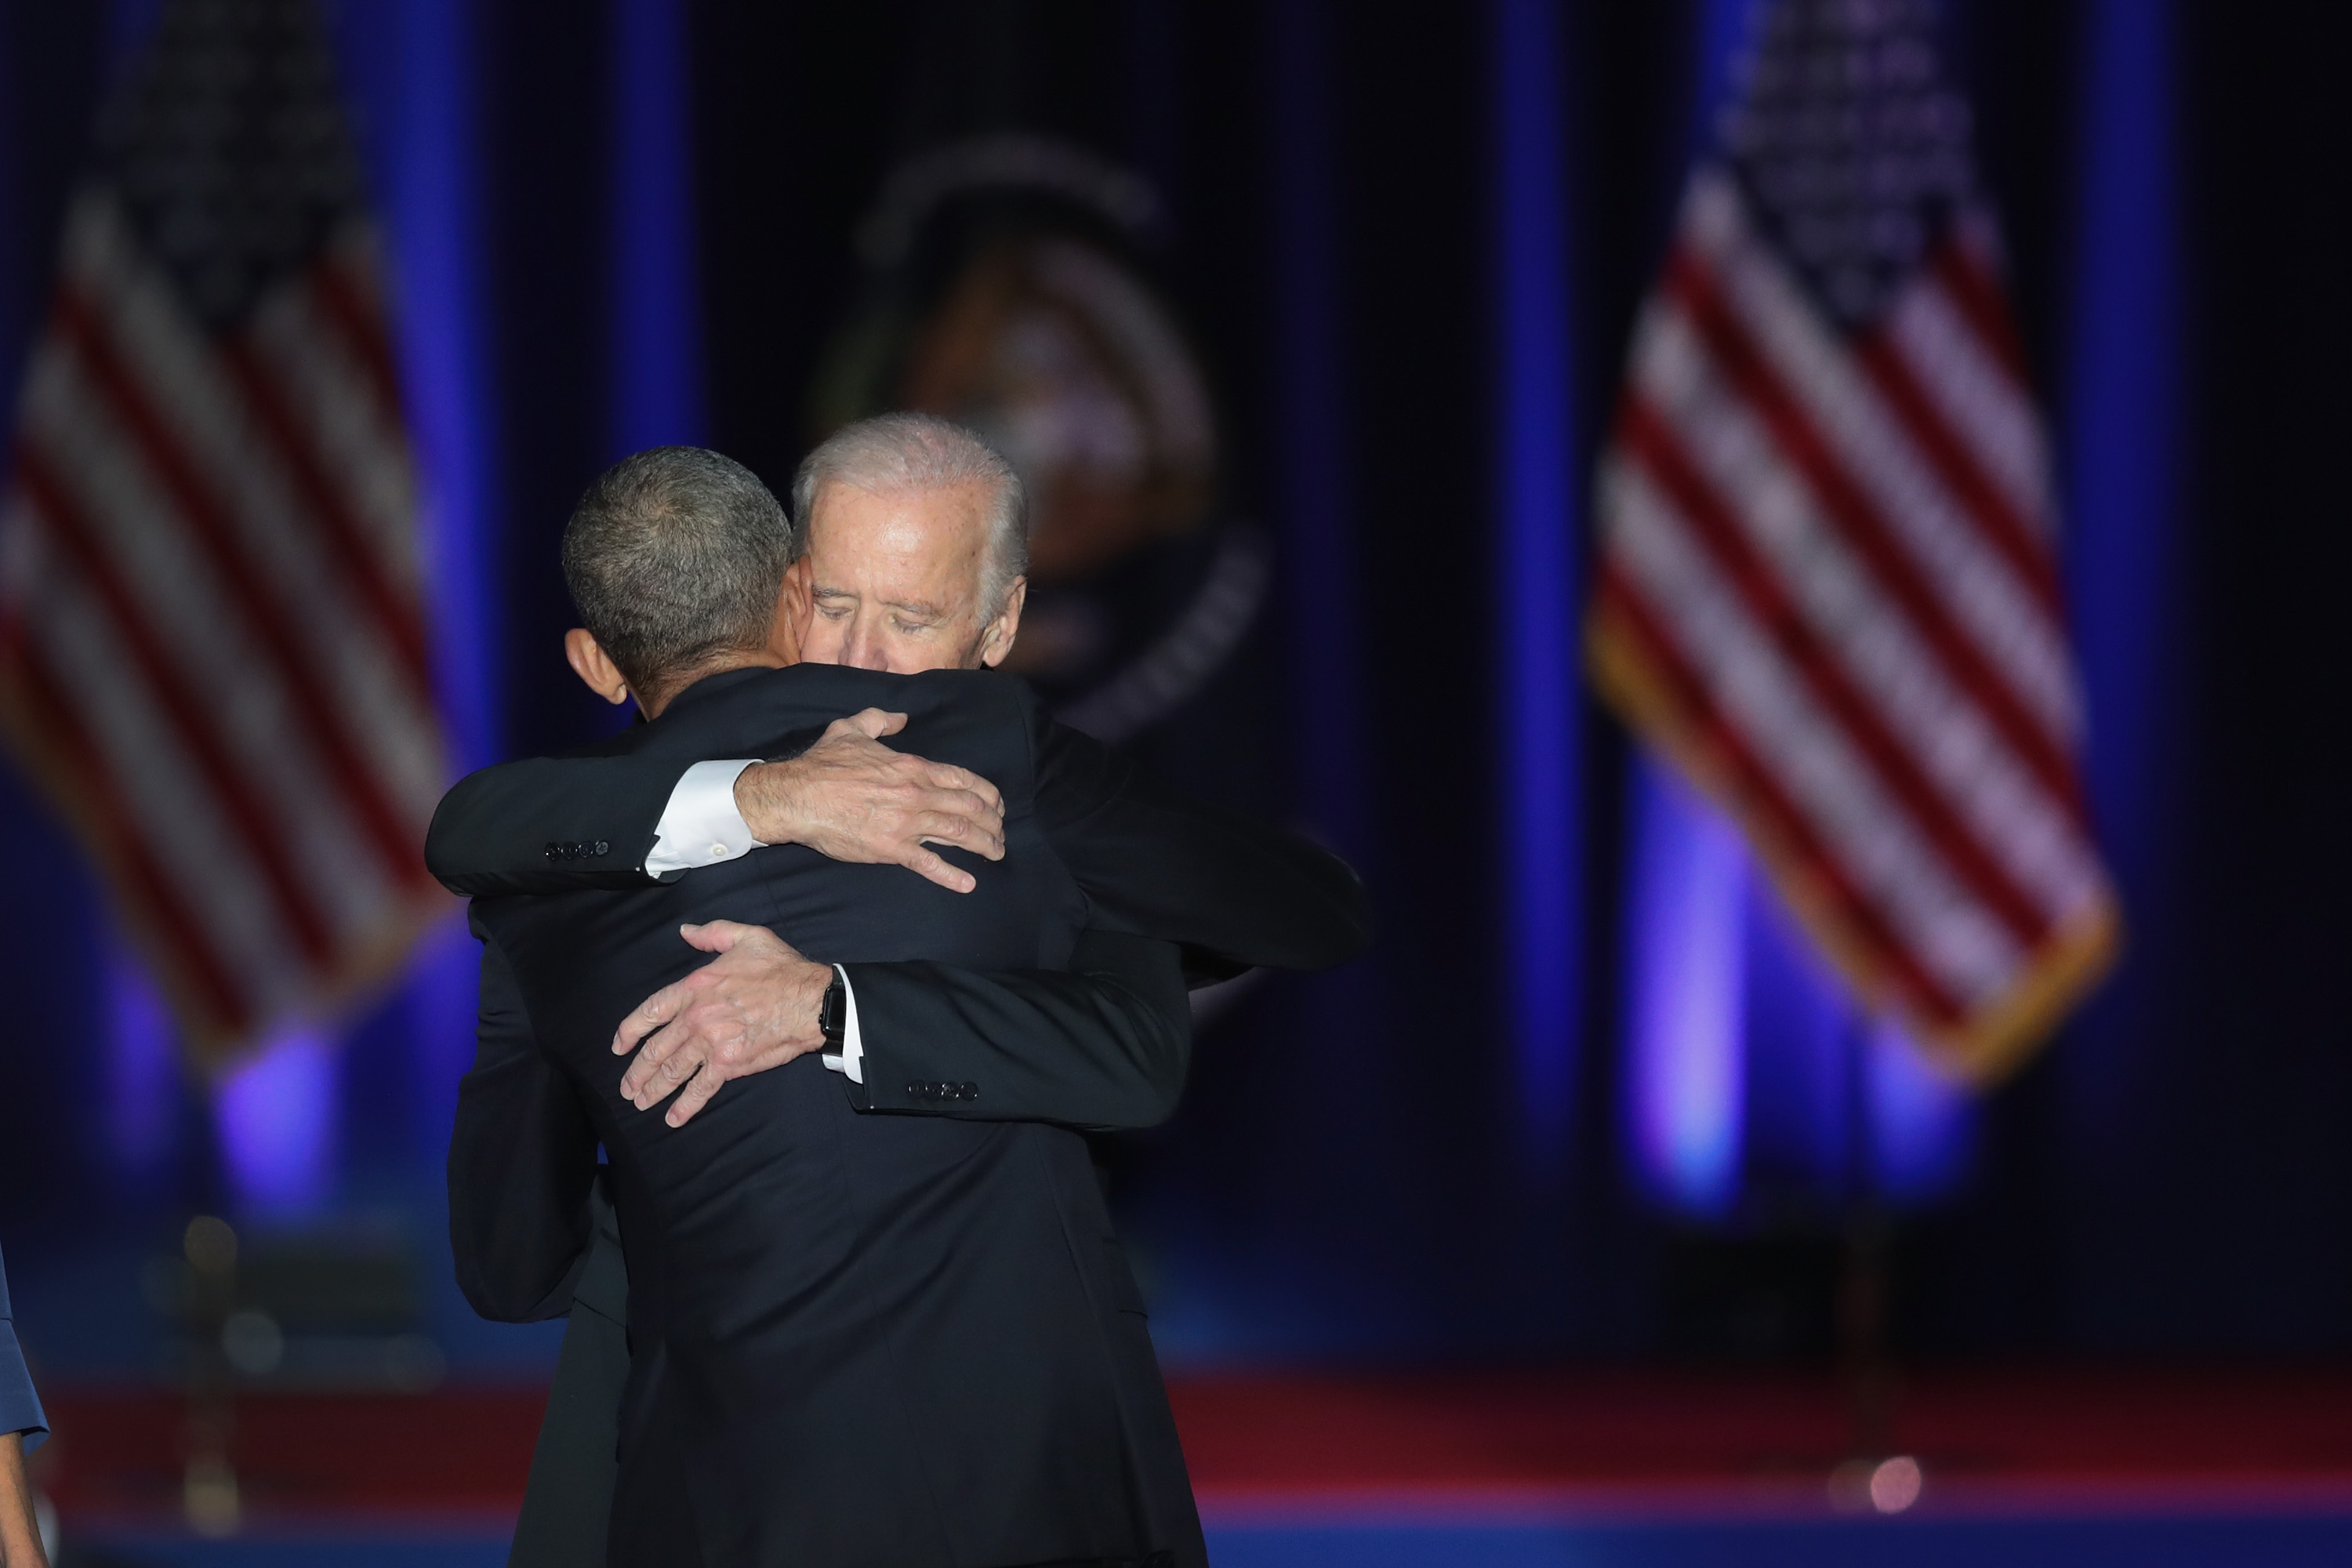 Joe Biden is not Barack Obama